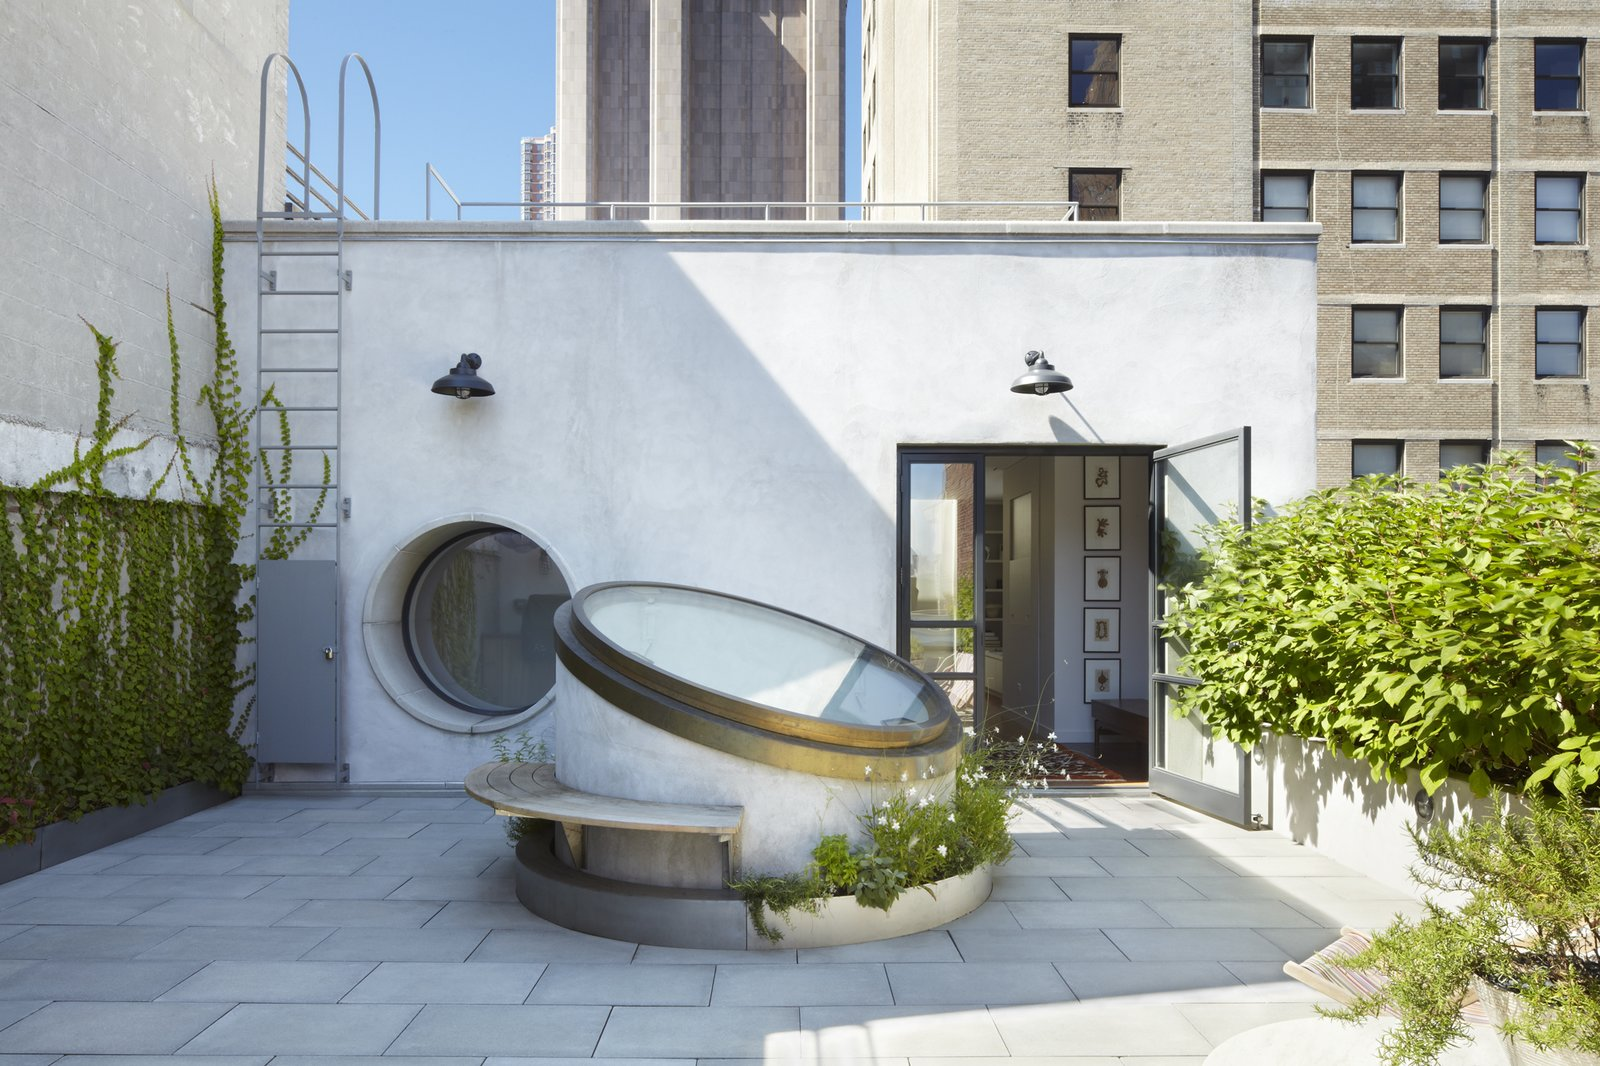 Roof garden - skylight in closed position.  White Street Residence by pulltab